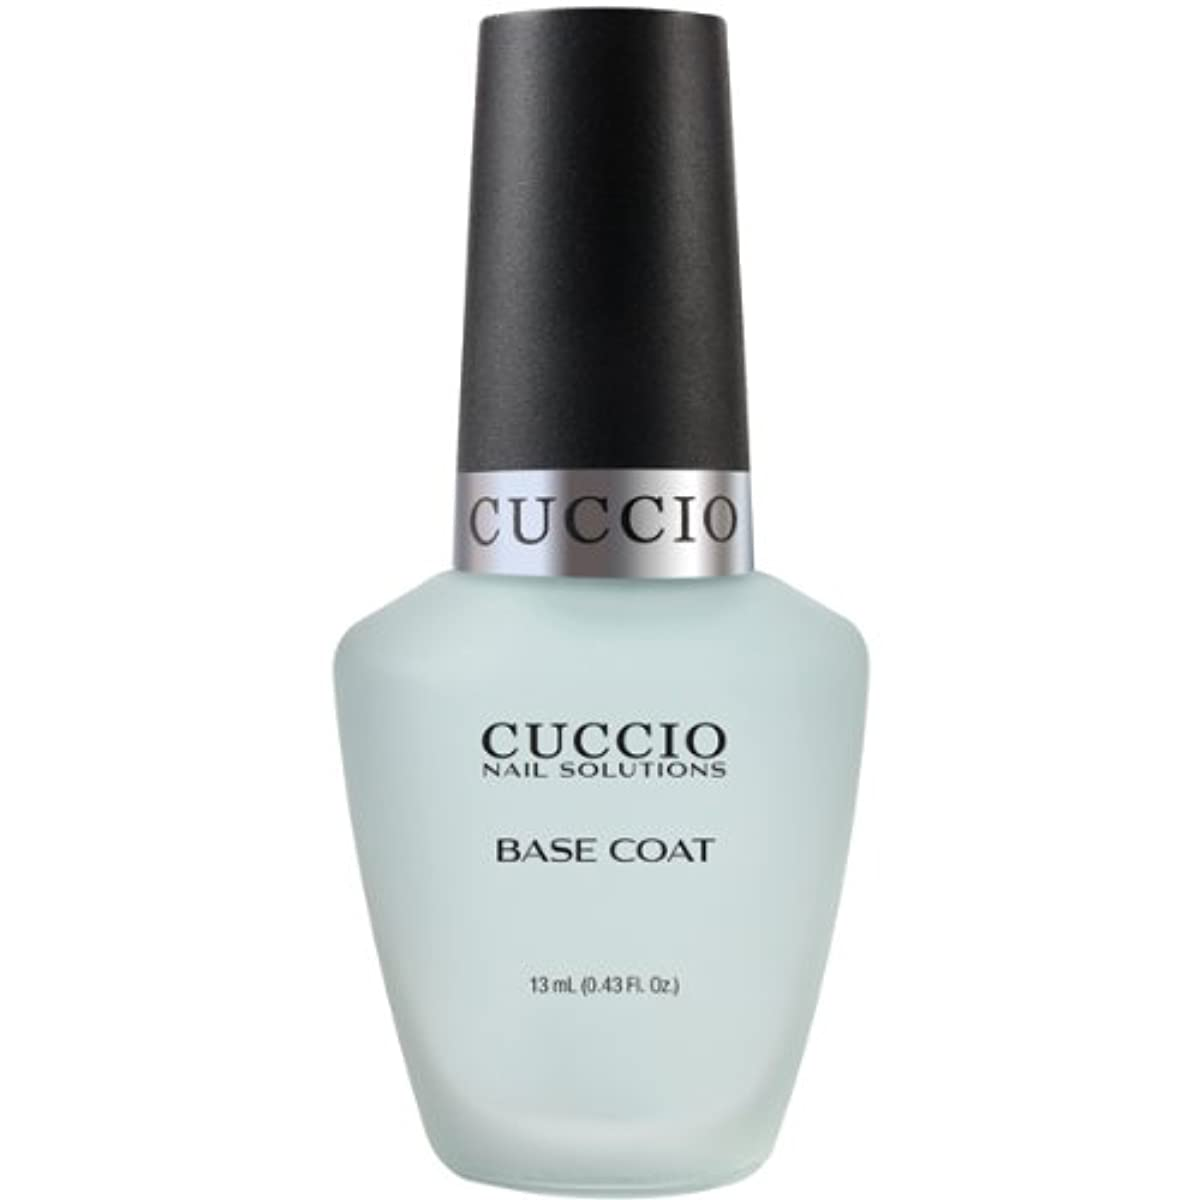 Cuccio Colour Gloss Lacquer - Base Coat - 0.43oz / 13ml